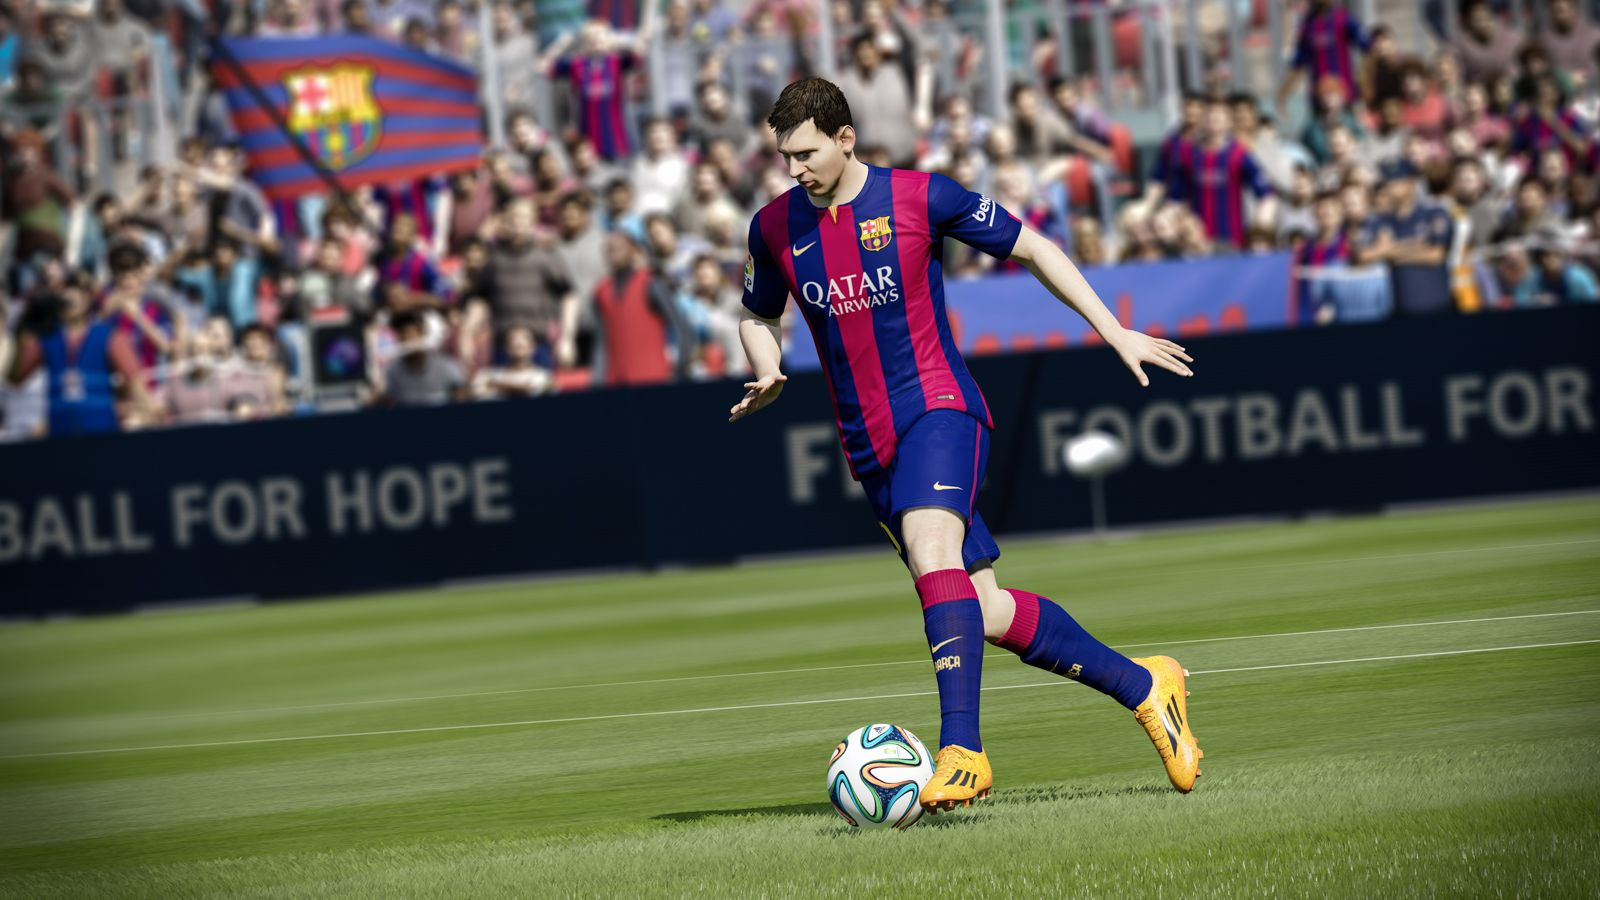 Download fifa 15 game hd wallpaper 7088 full size free download fifa 15 game hd wallpaper 7088 full size voltagebd Gallery